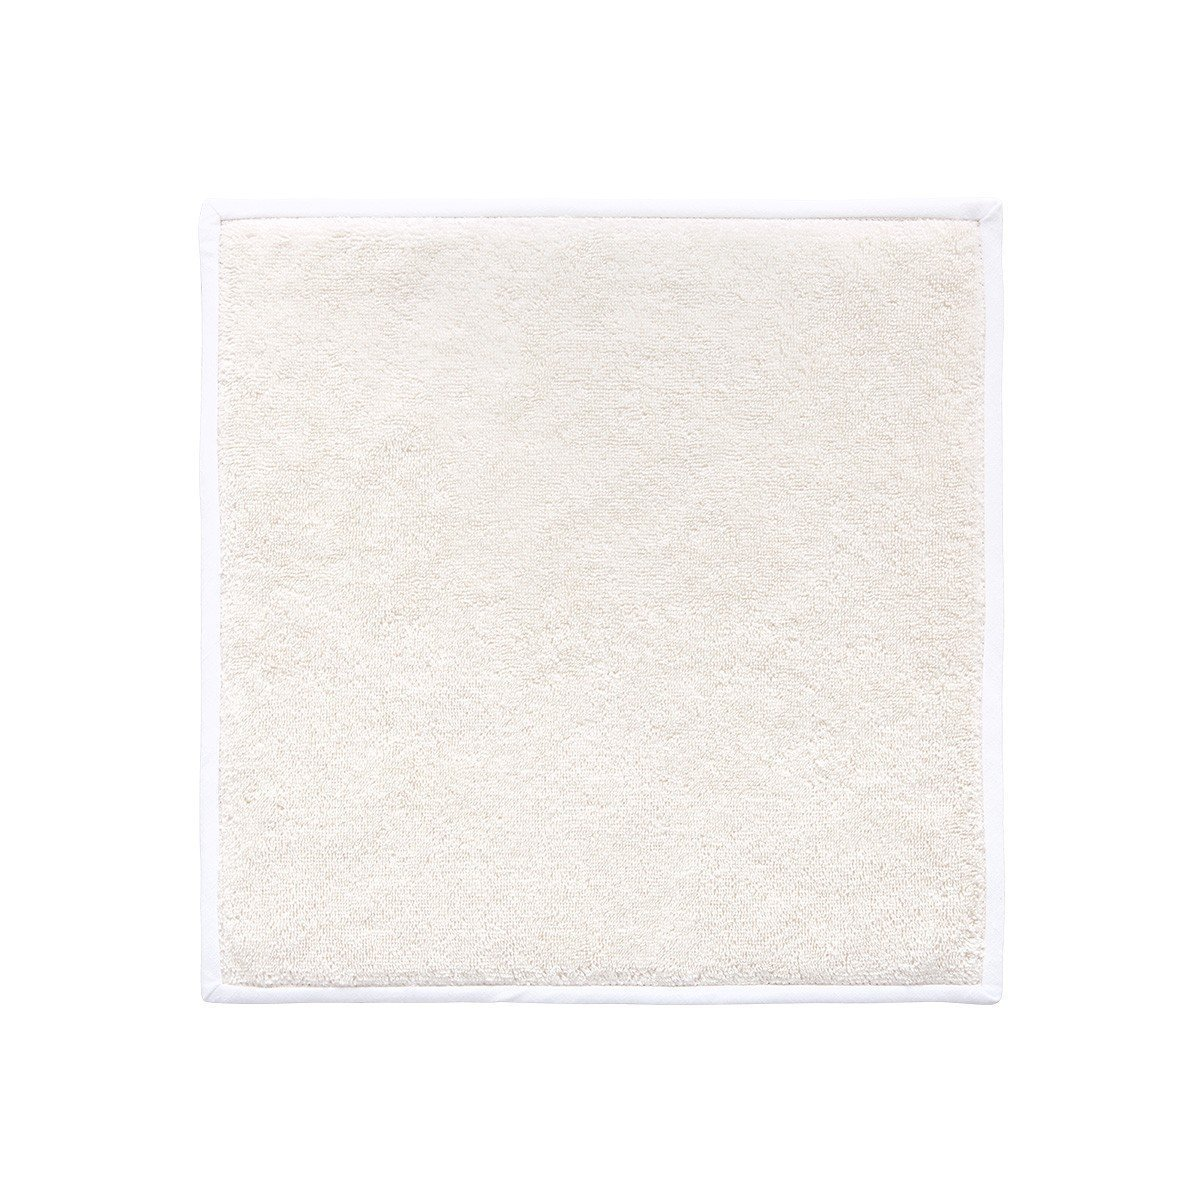 Adagio Perle Bath Collection by Yves Delorme | Fig Linens - Ivory Bath Linen - washcloth